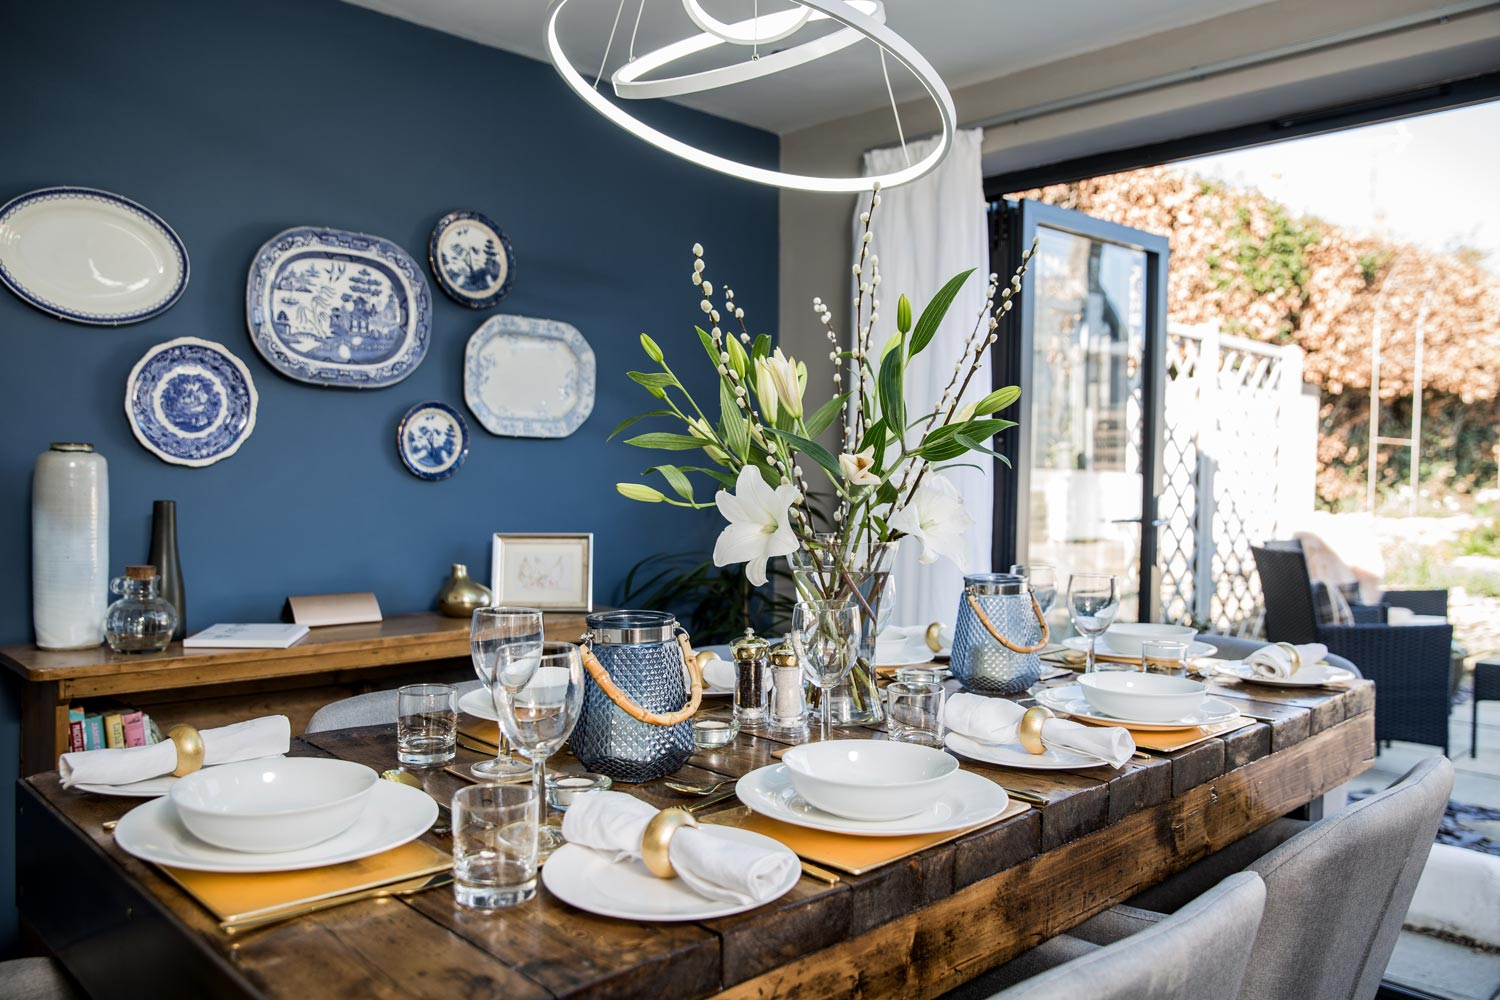 Summer dining brings the outside inside